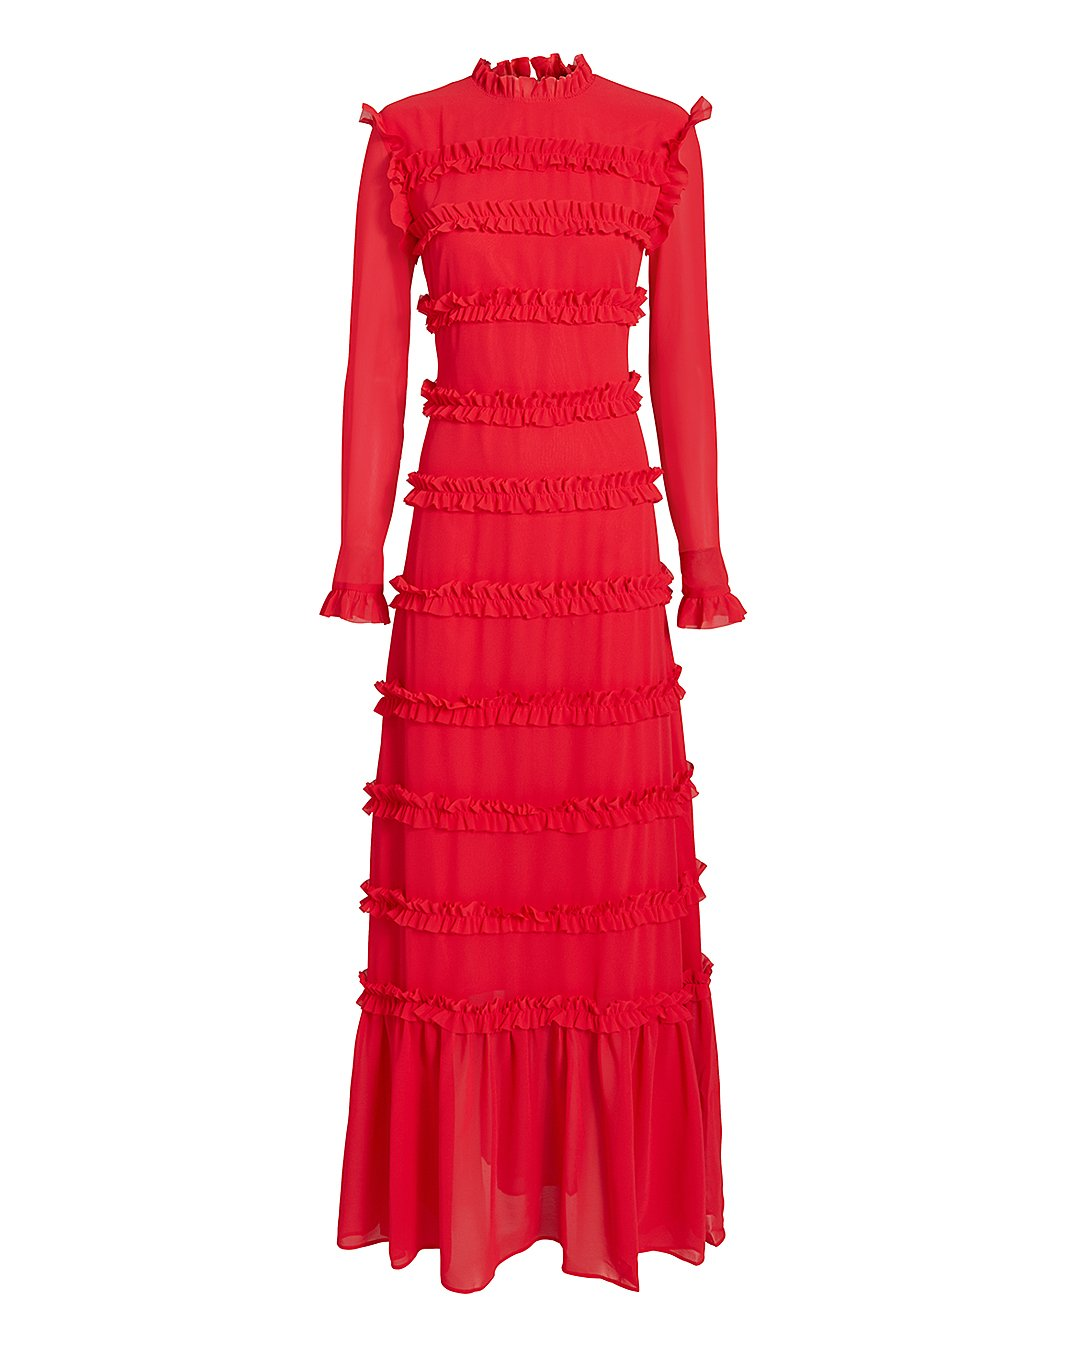 Hadley Ruffle-Trimmed Maxi Dress in Red